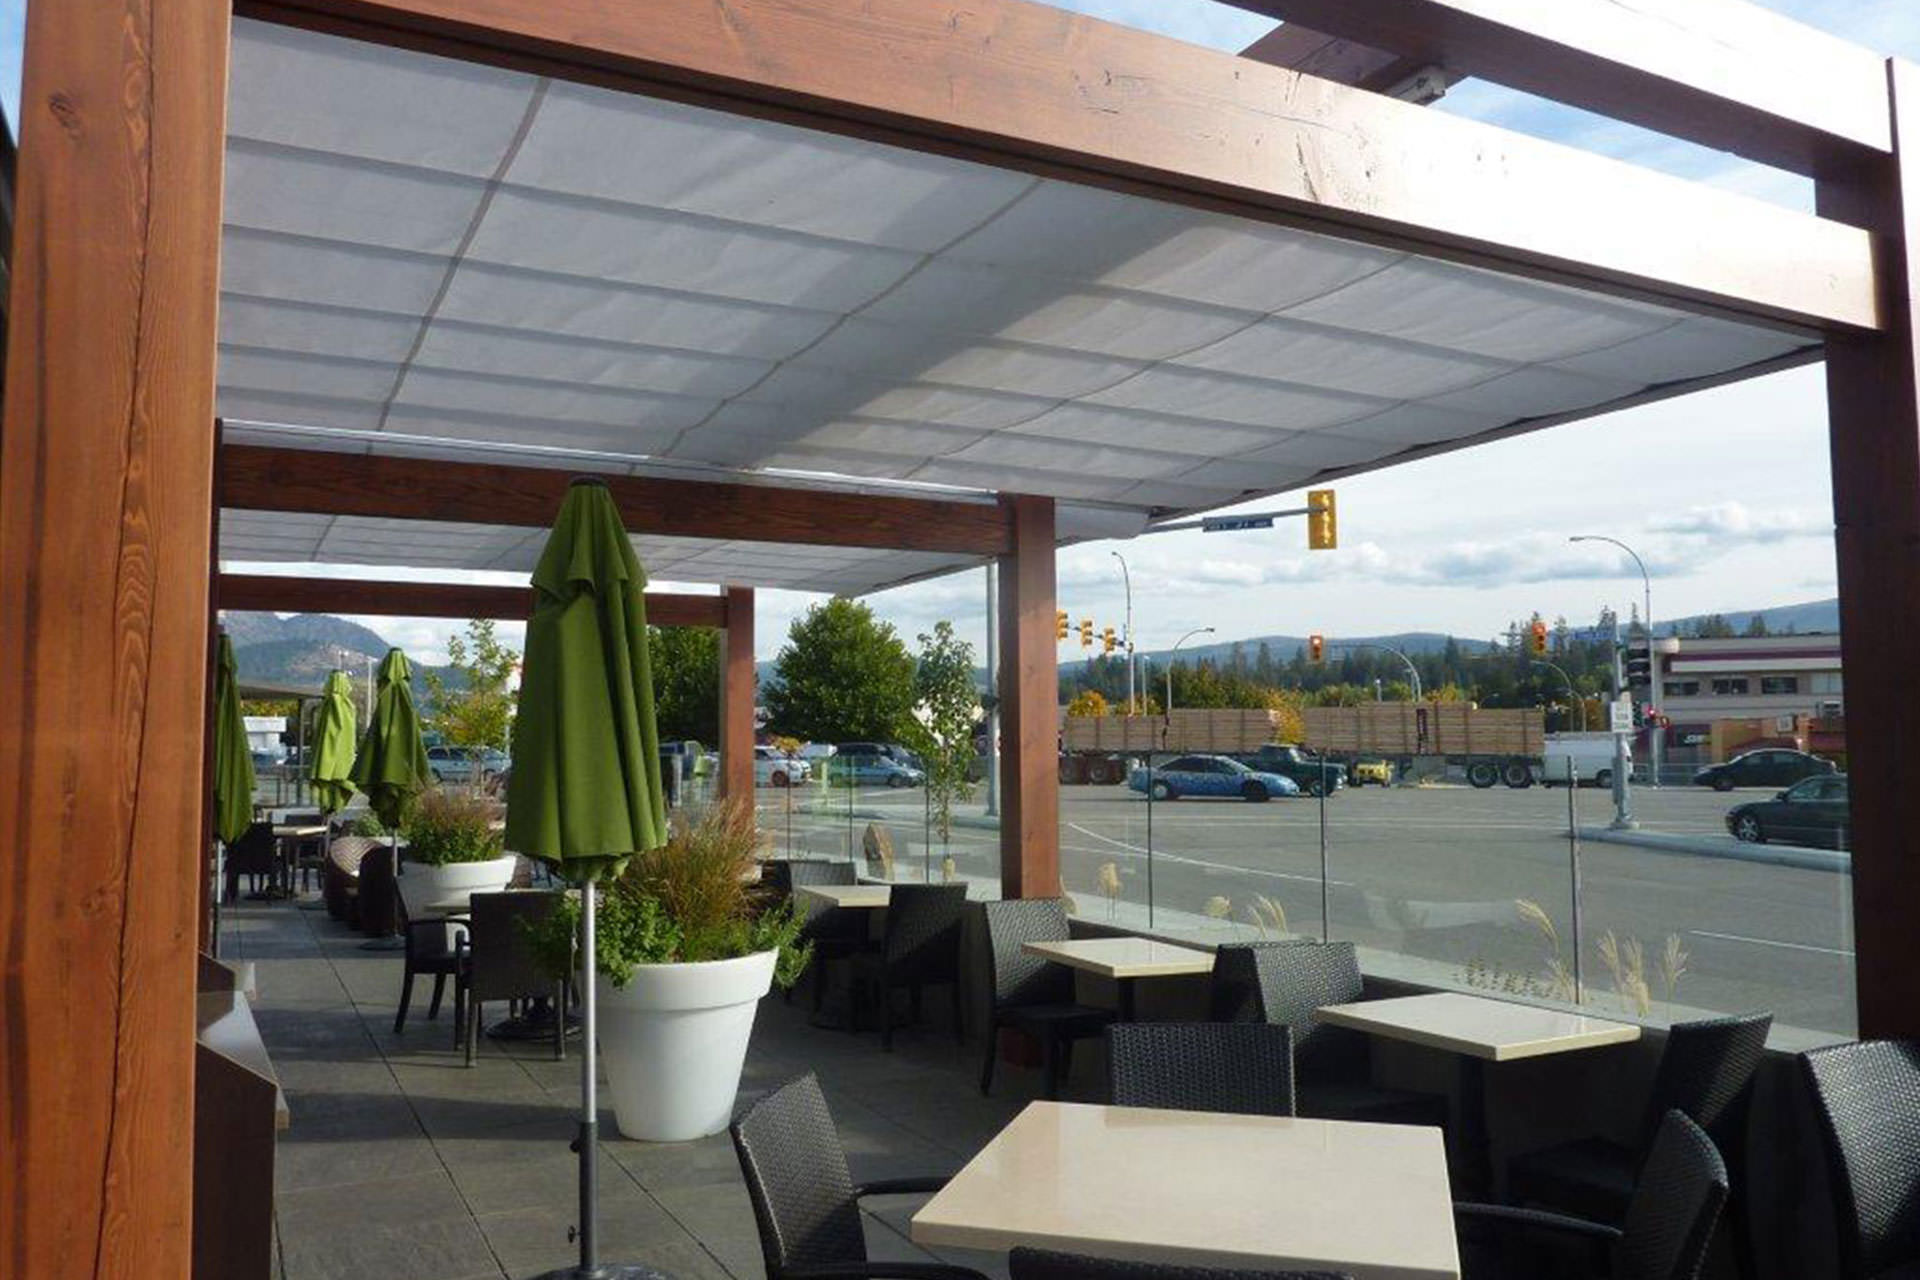 Cantilevered Retractable Canopies, Ora Restaurant